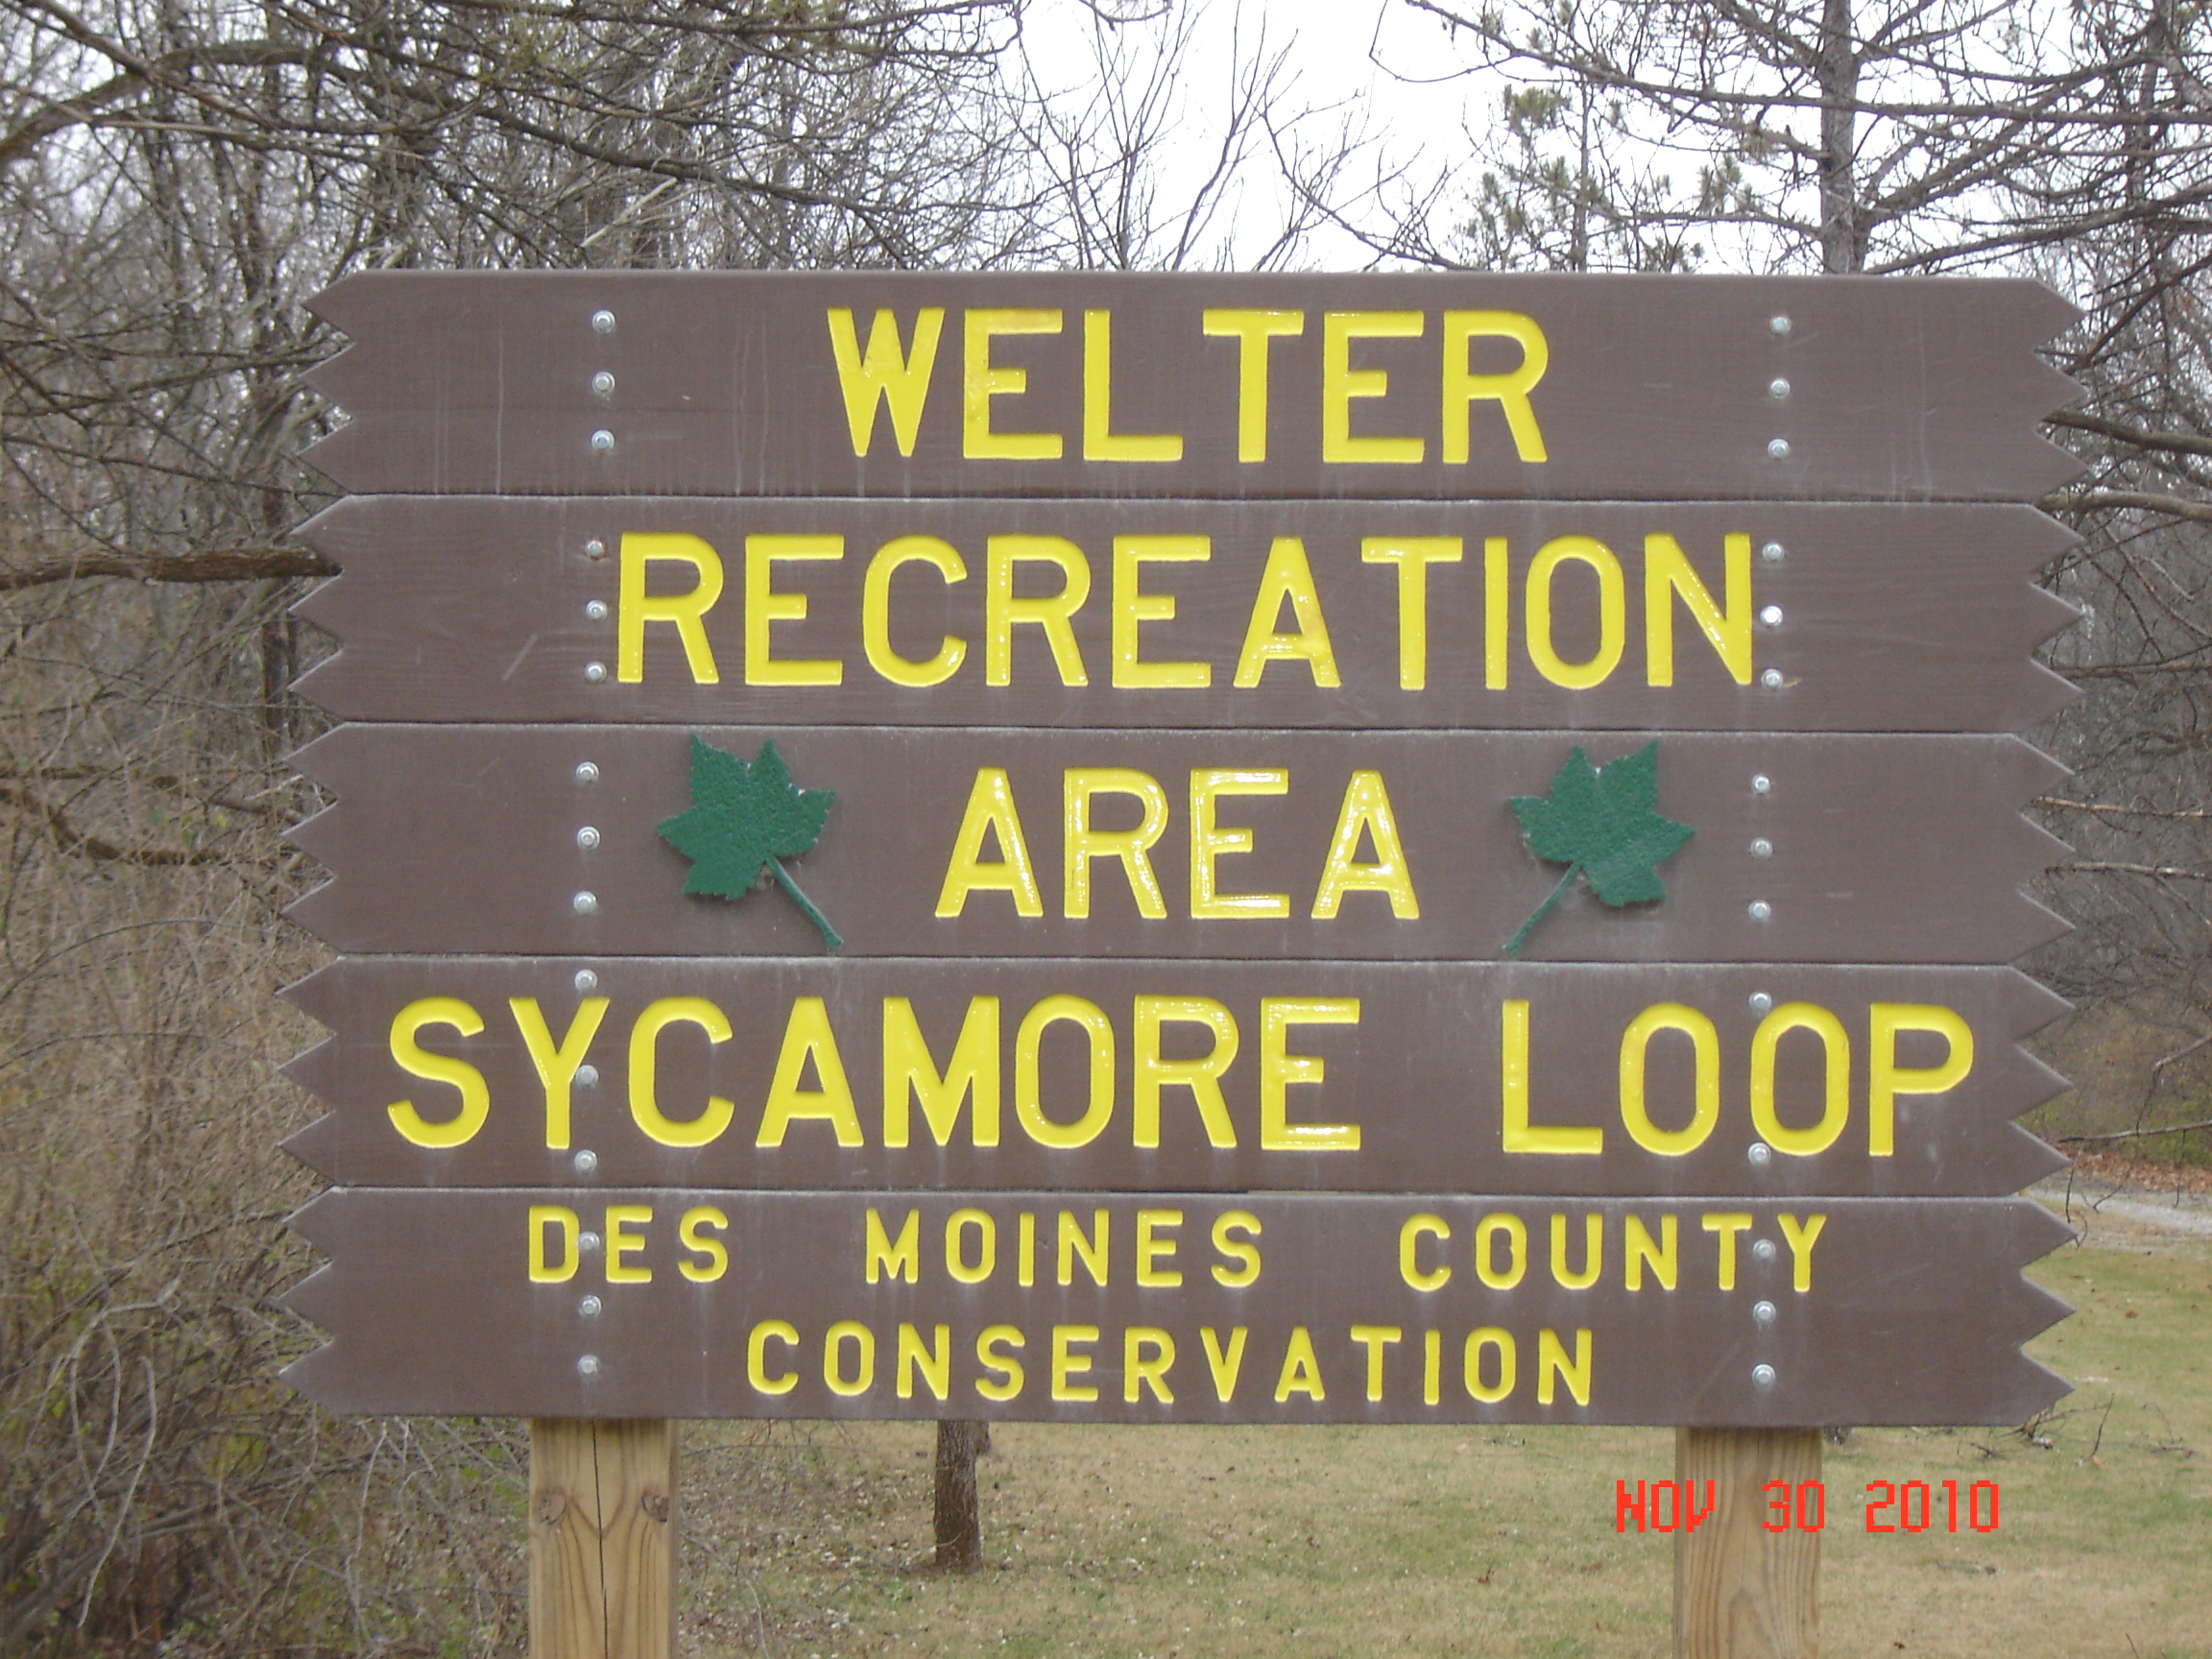 Welter Recreation Area